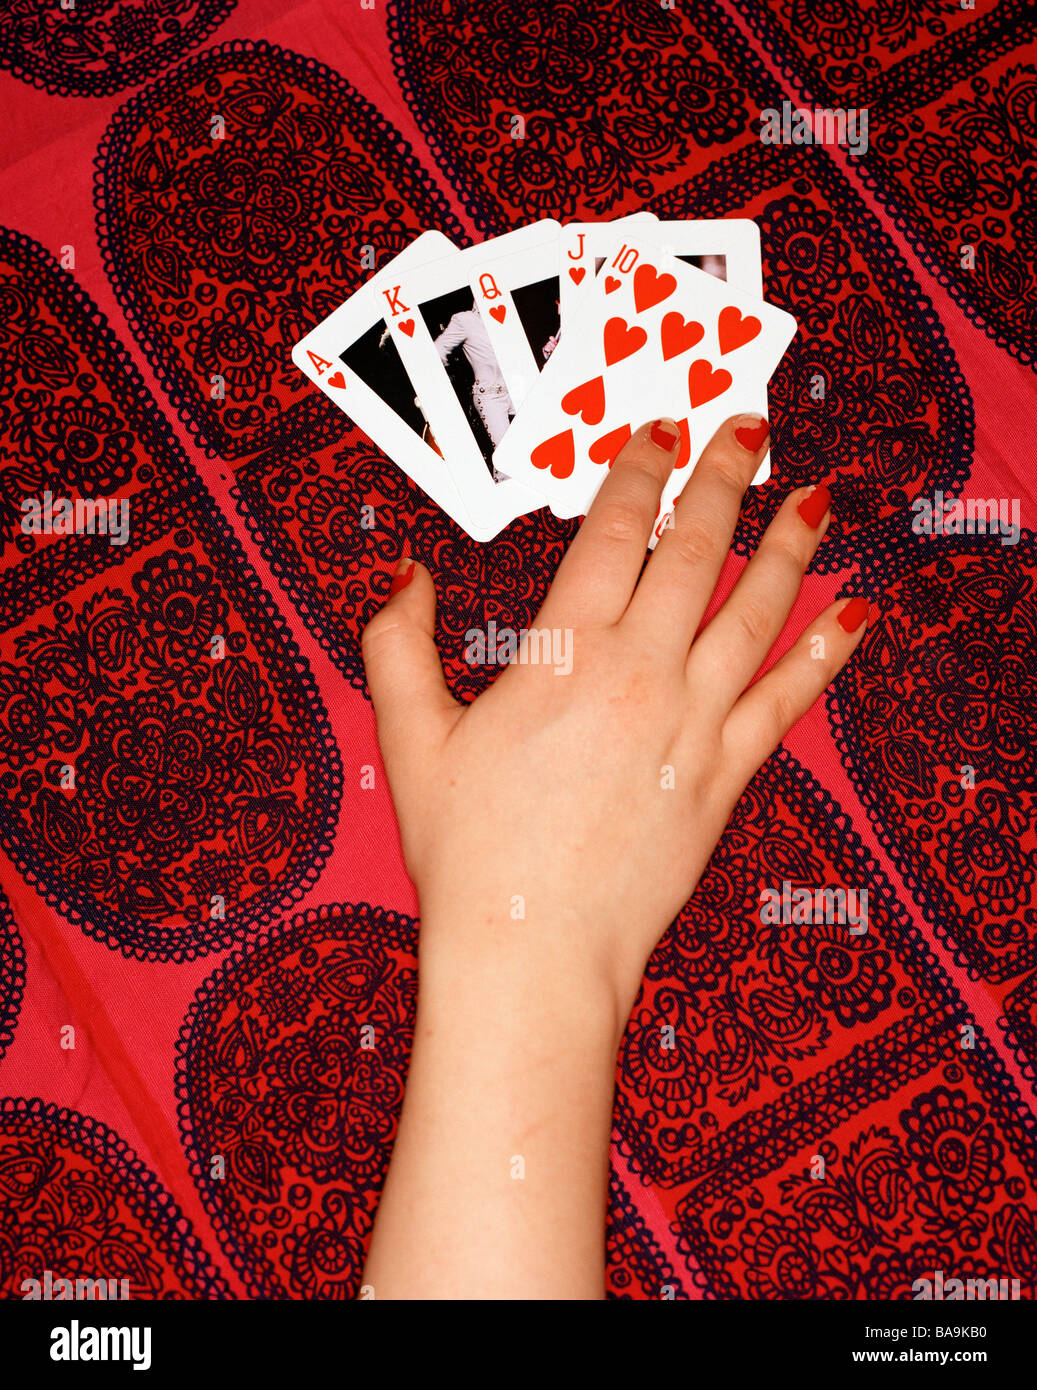 A straight flush. - Stock Image